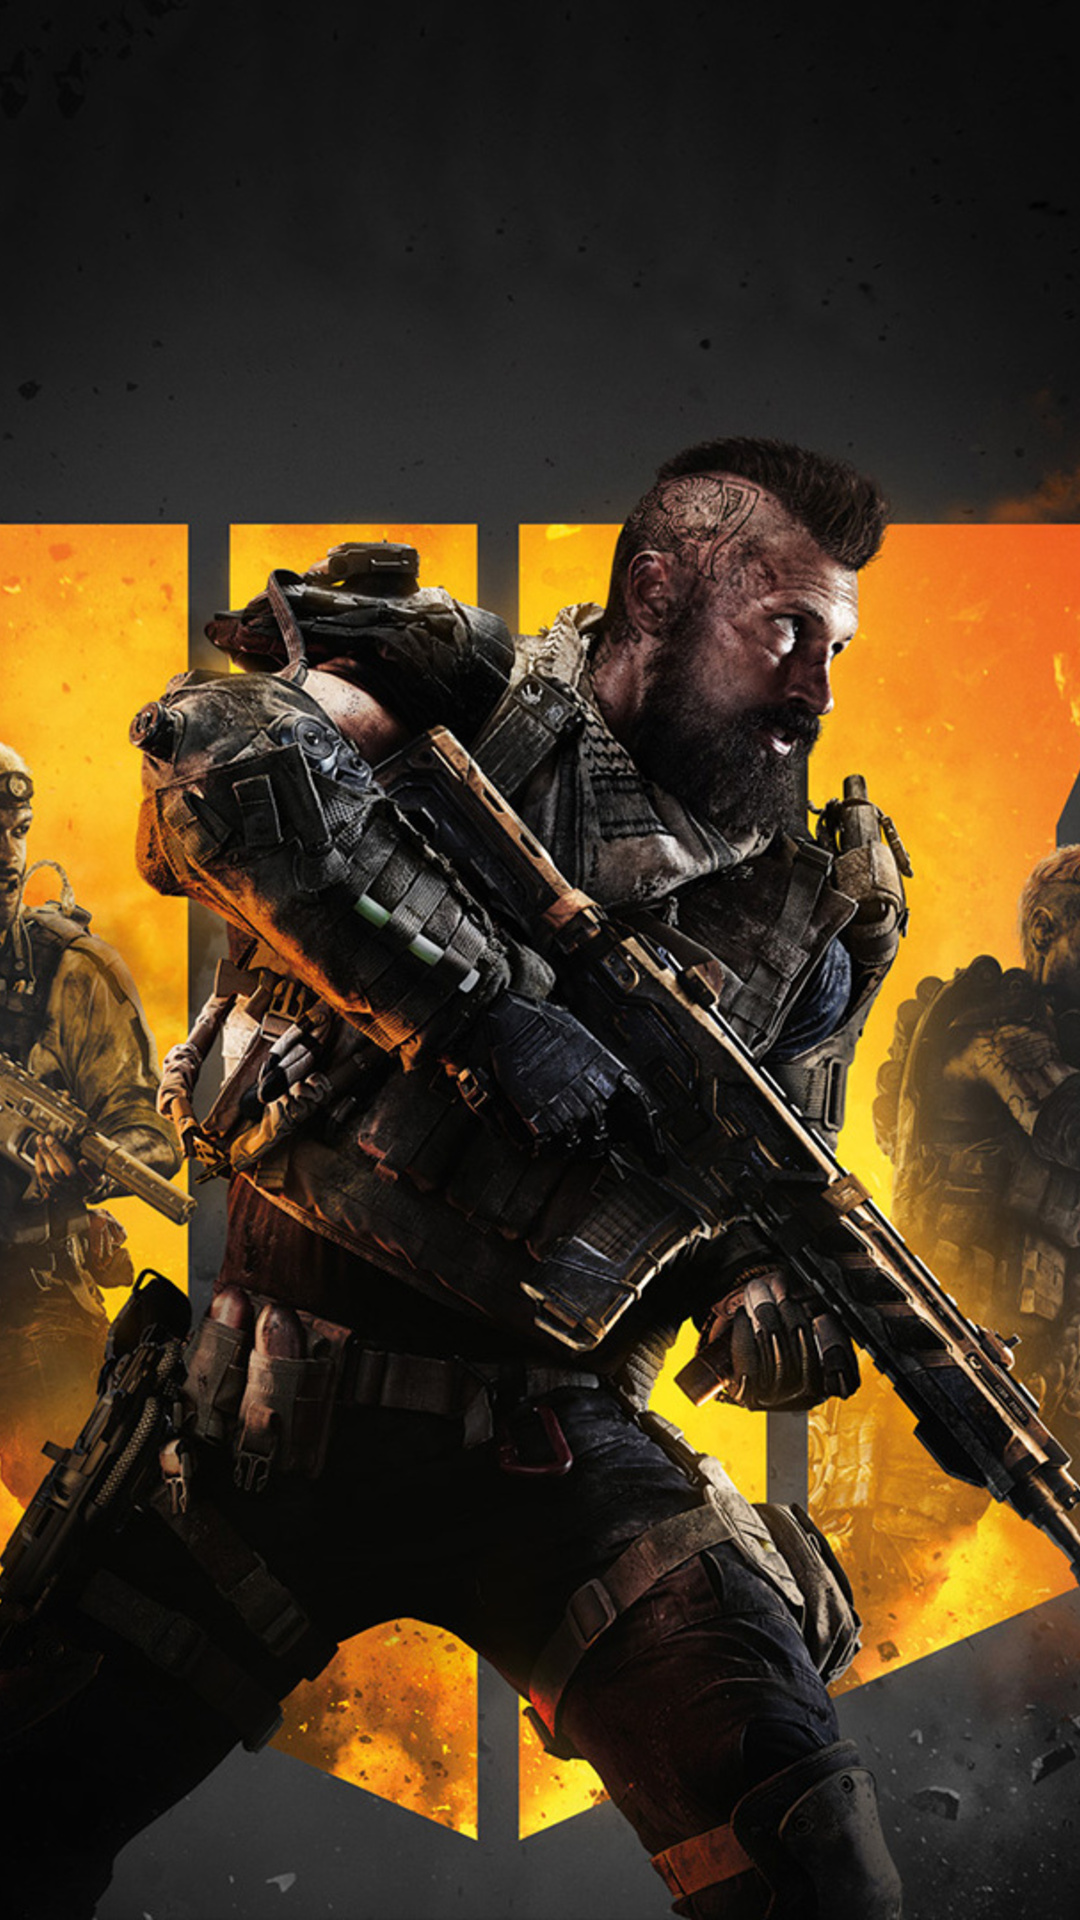 1080x1920 Call Of Duty Black Ops 4 2018 Iphone 76s6 Plus